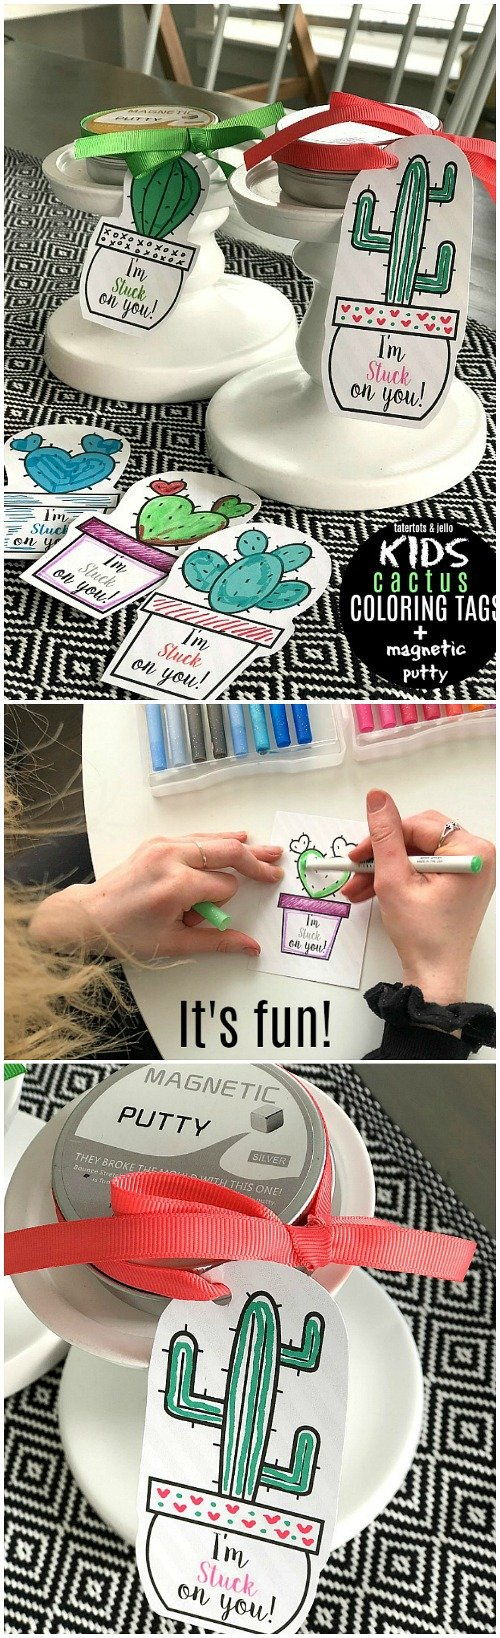 Magnetic putty and kids coloring valentine tags